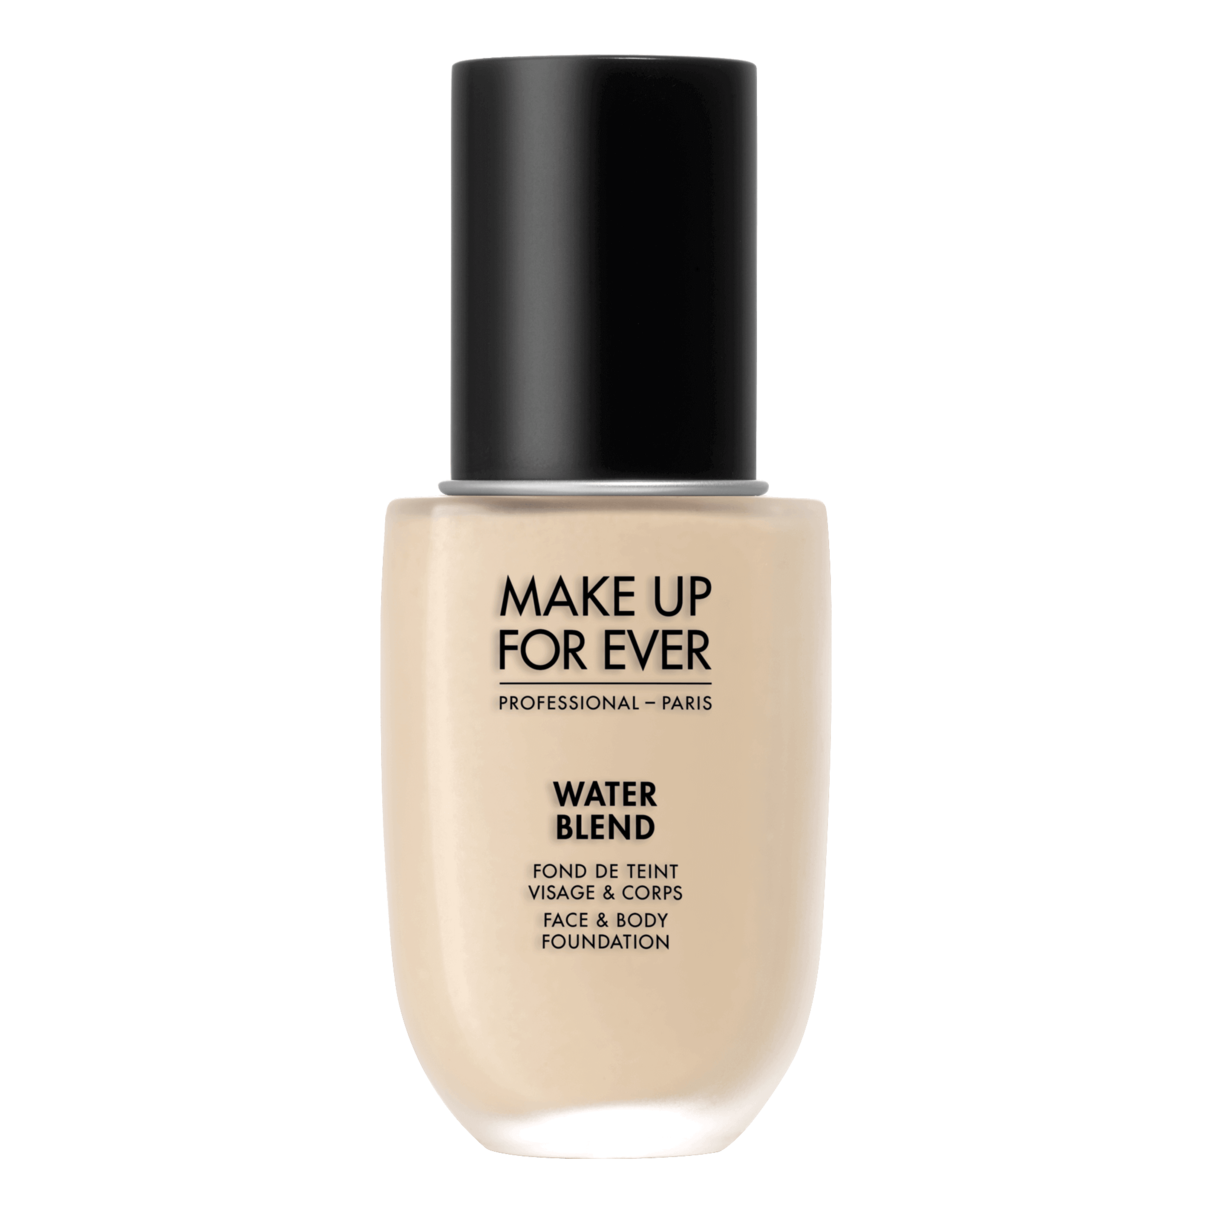 Water Blend Foundation MAKE UP FOR EVER Body